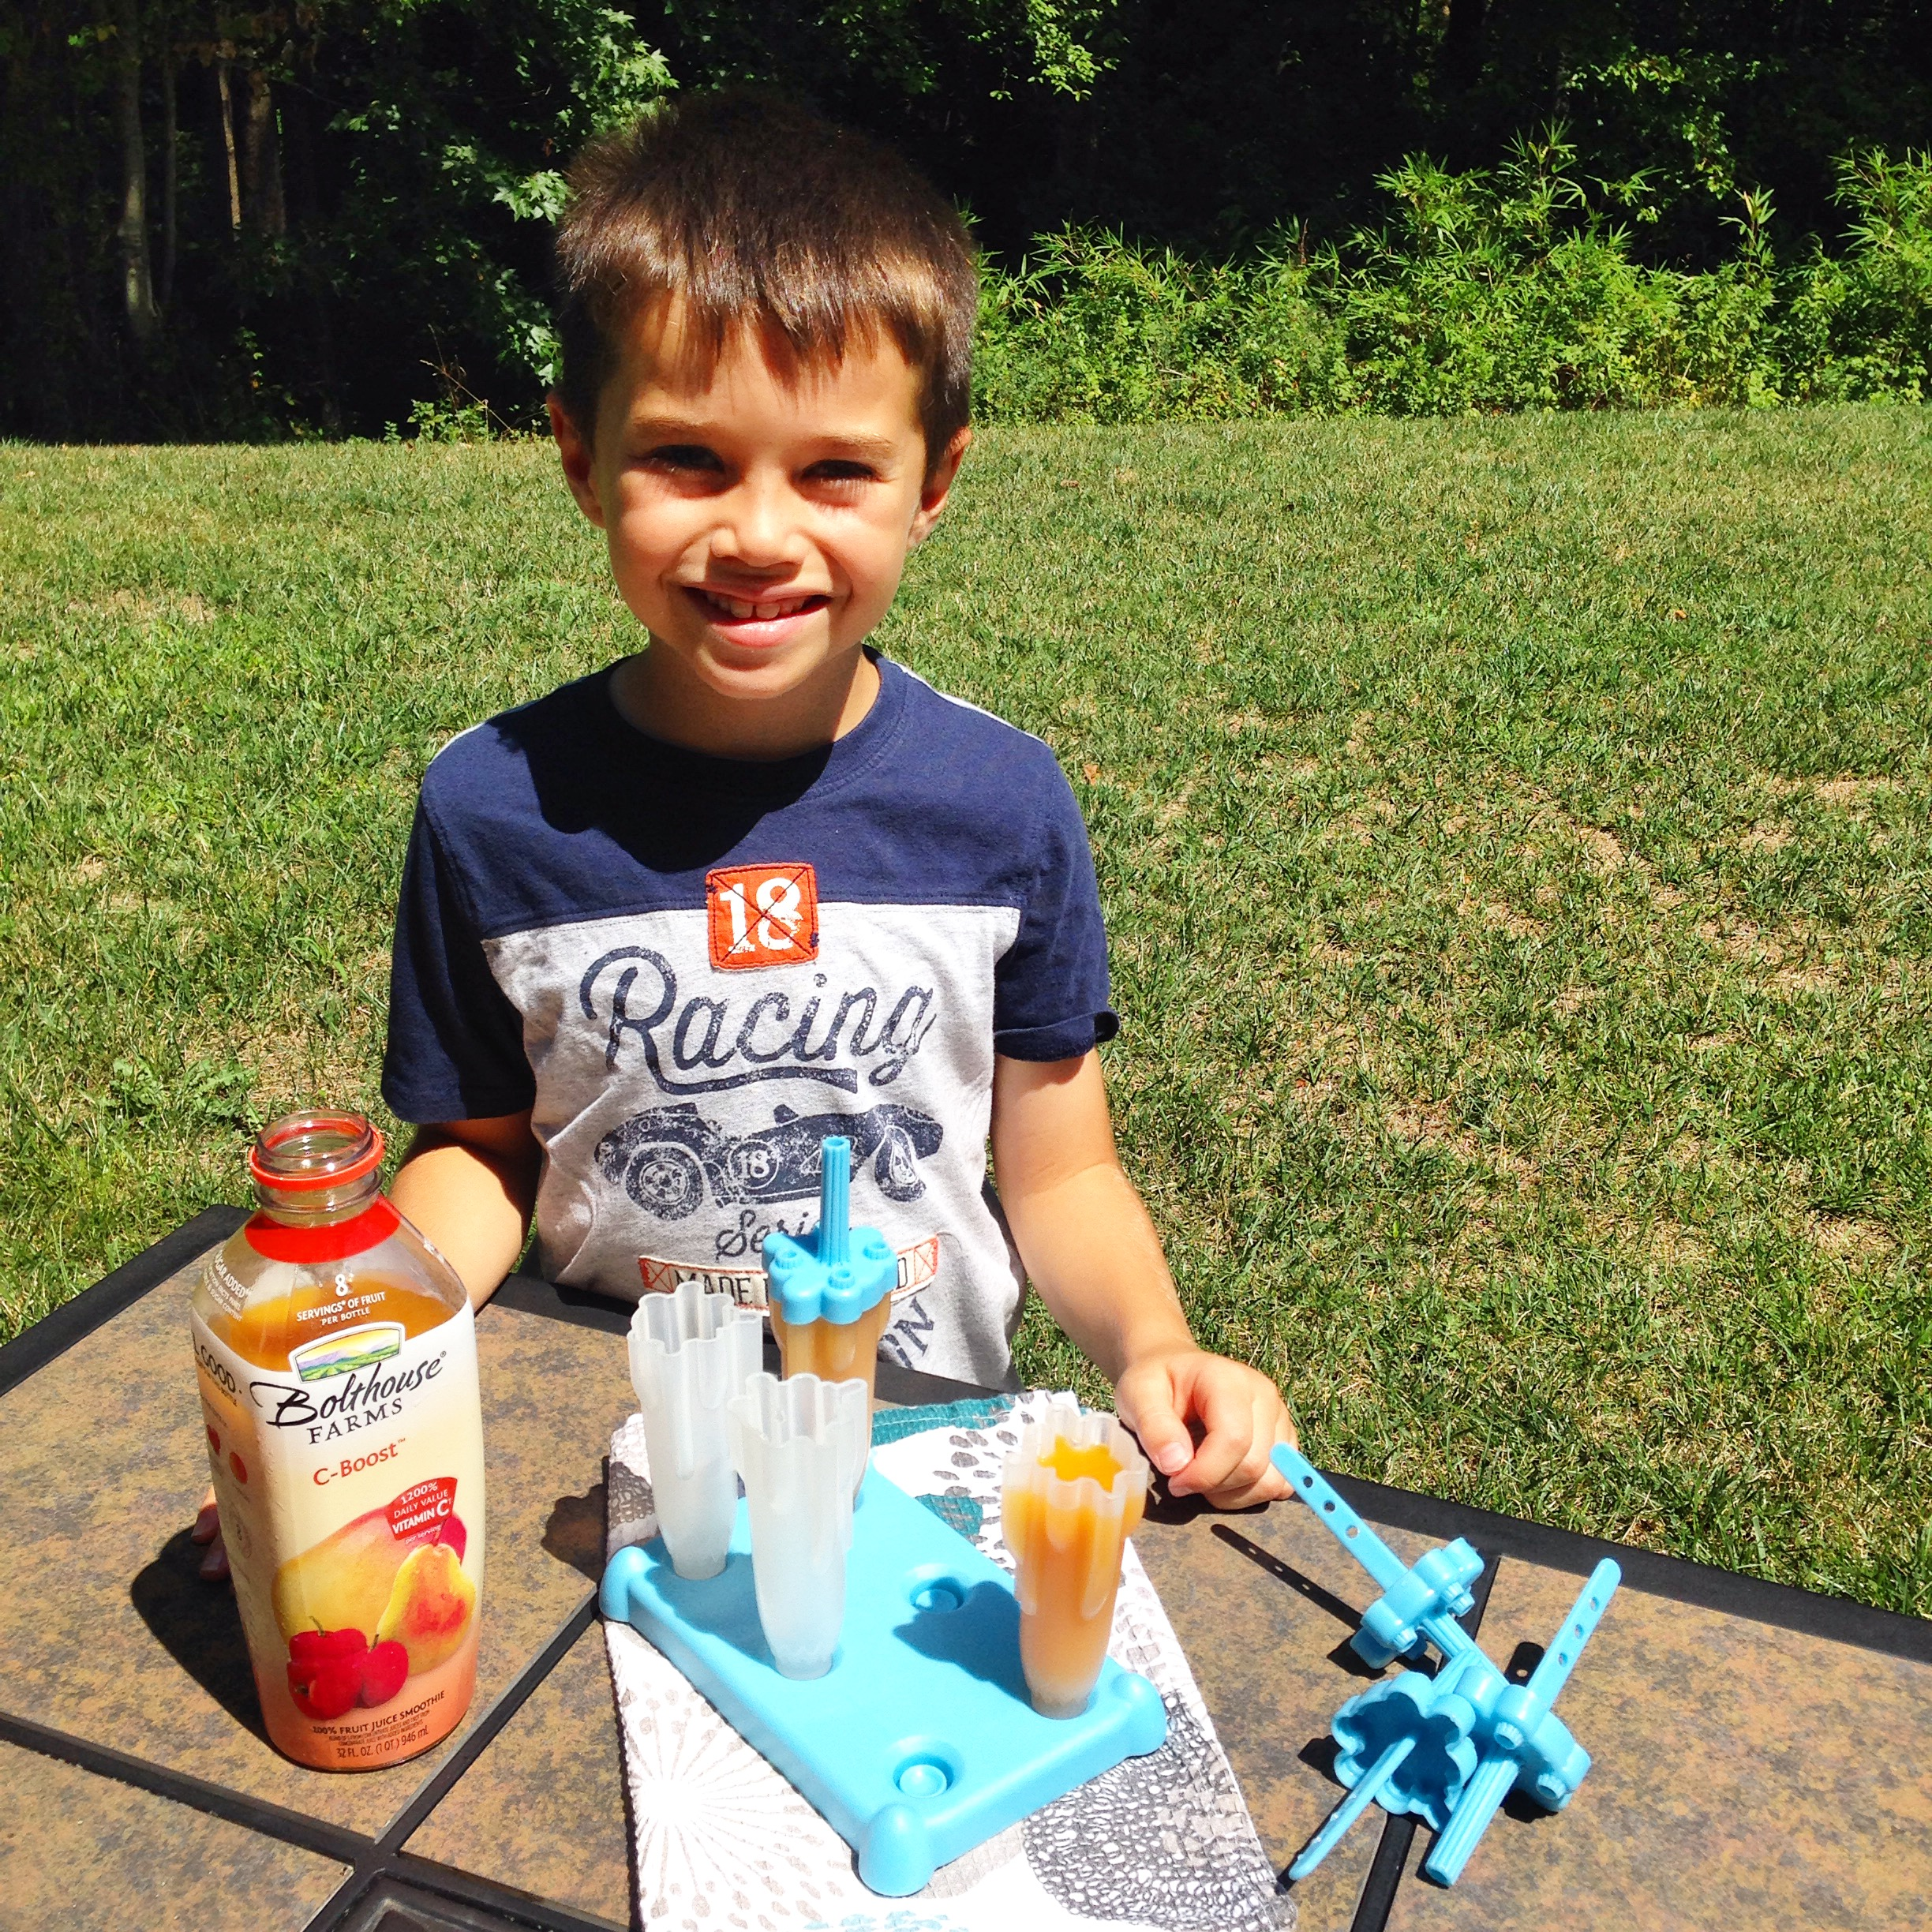 Make this a family event by freezing easy kid pops too with their favorite sugar free juice. Semi-homemade has never been so fun!